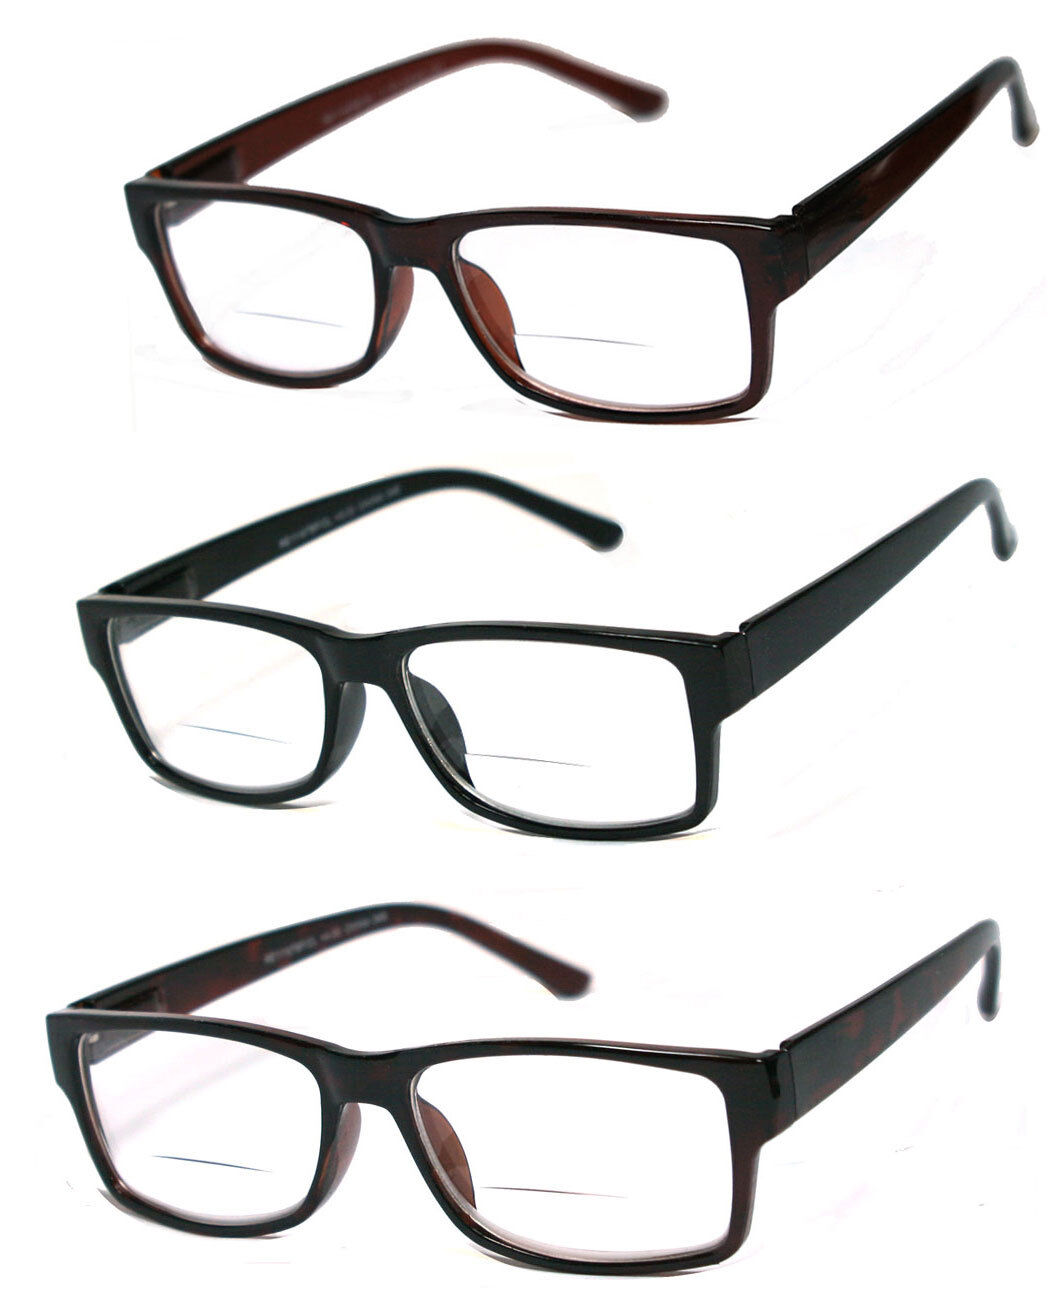 341e1228aa8 Details about 1 or 2 Pairs Retro Square Frame Mens Womens Bifocal Reading  Glasses Spring Hinge